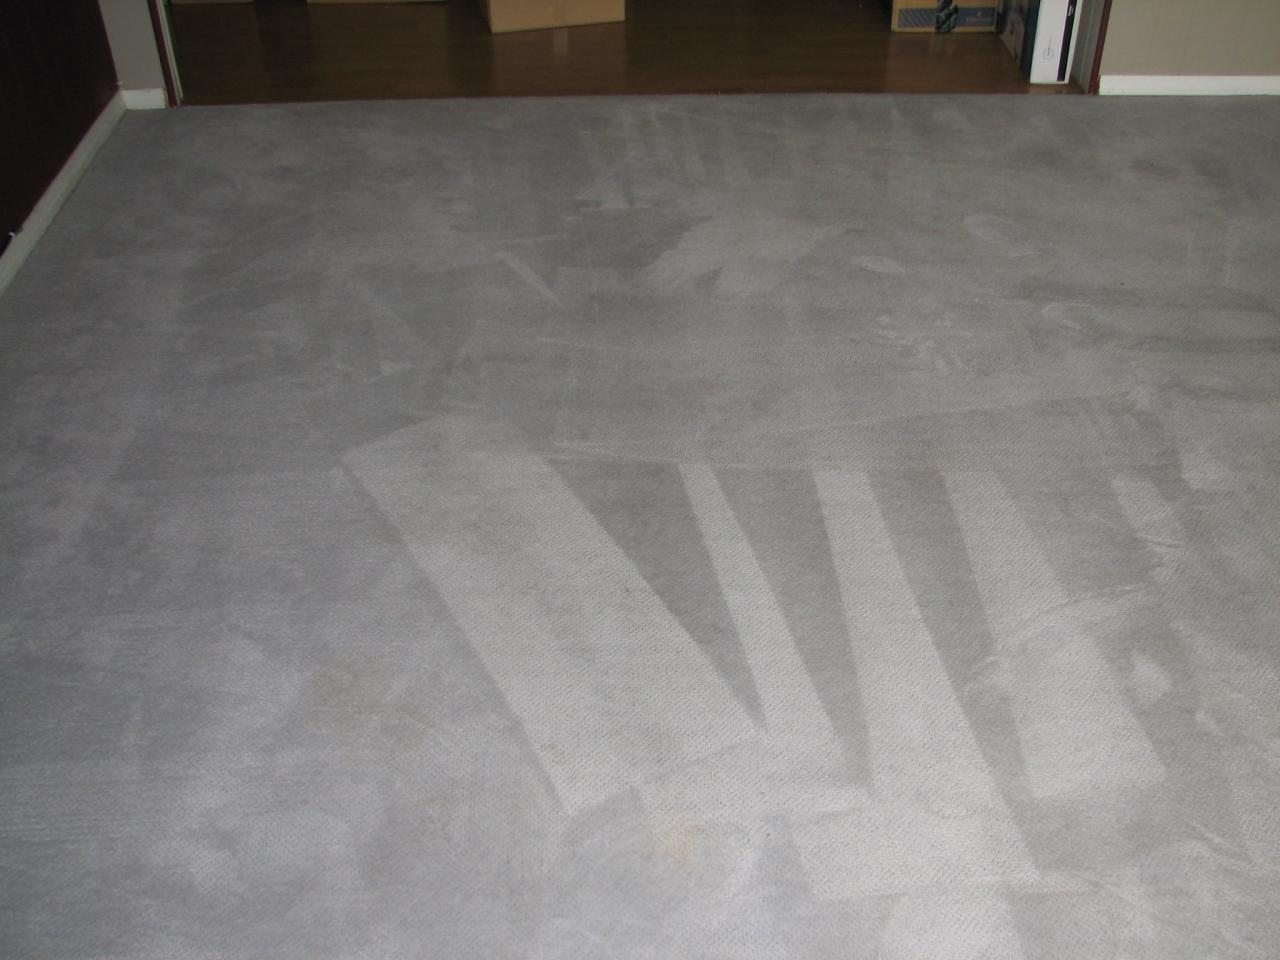 Pro Clean Home Bend Carpet Cleaning And More Leather Cleaning And Restorationarea Rugssilk